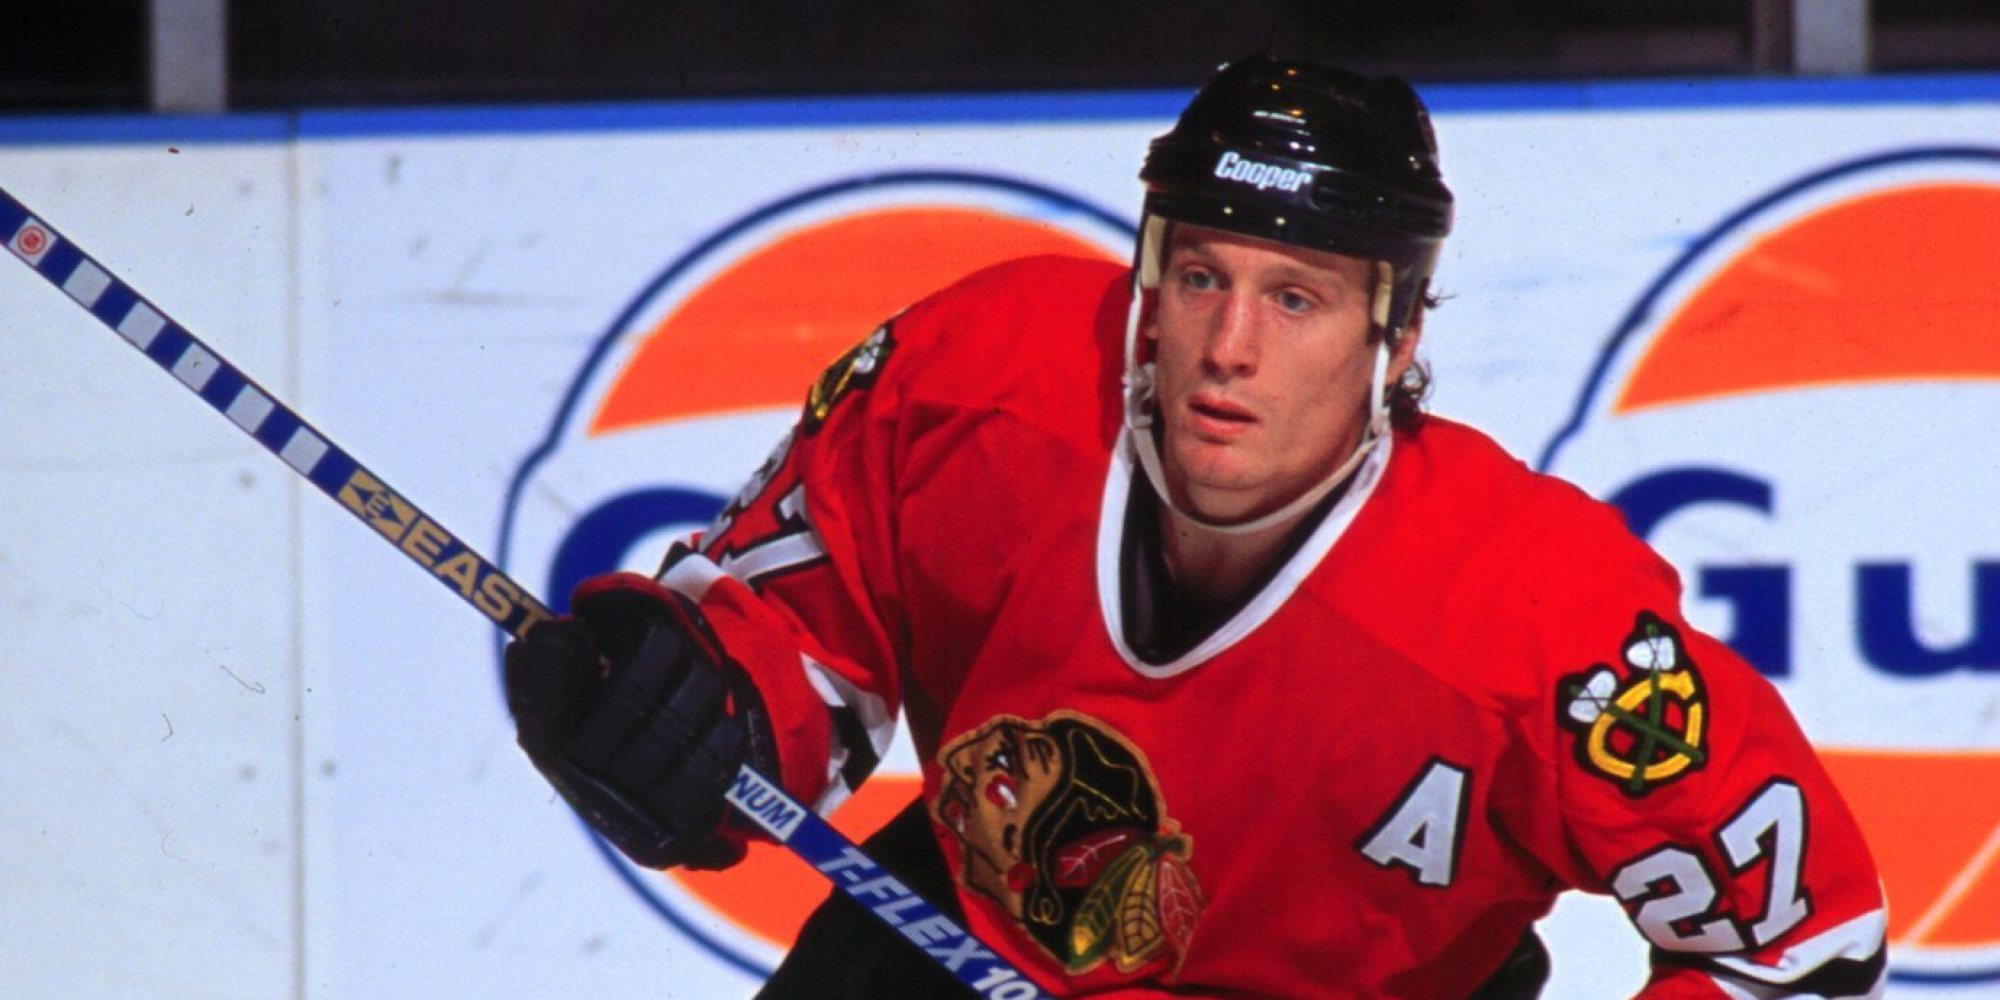 Jeremy roenick gambling casino asian games